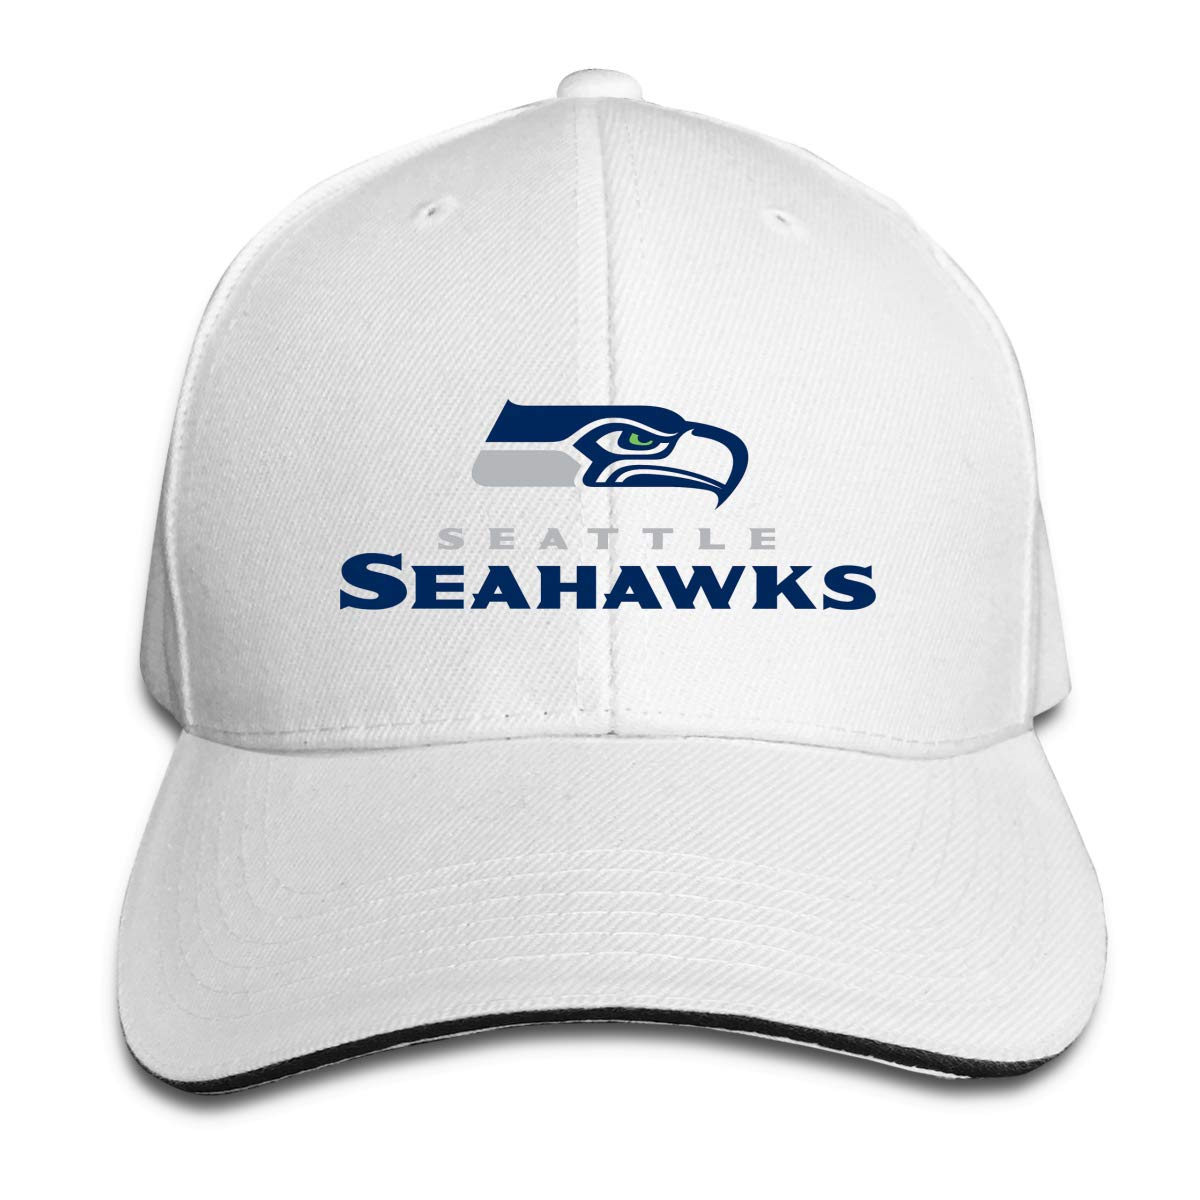 Main-Theme Seattle Seahawks Adjustable Hat One Size Fits All,Gray